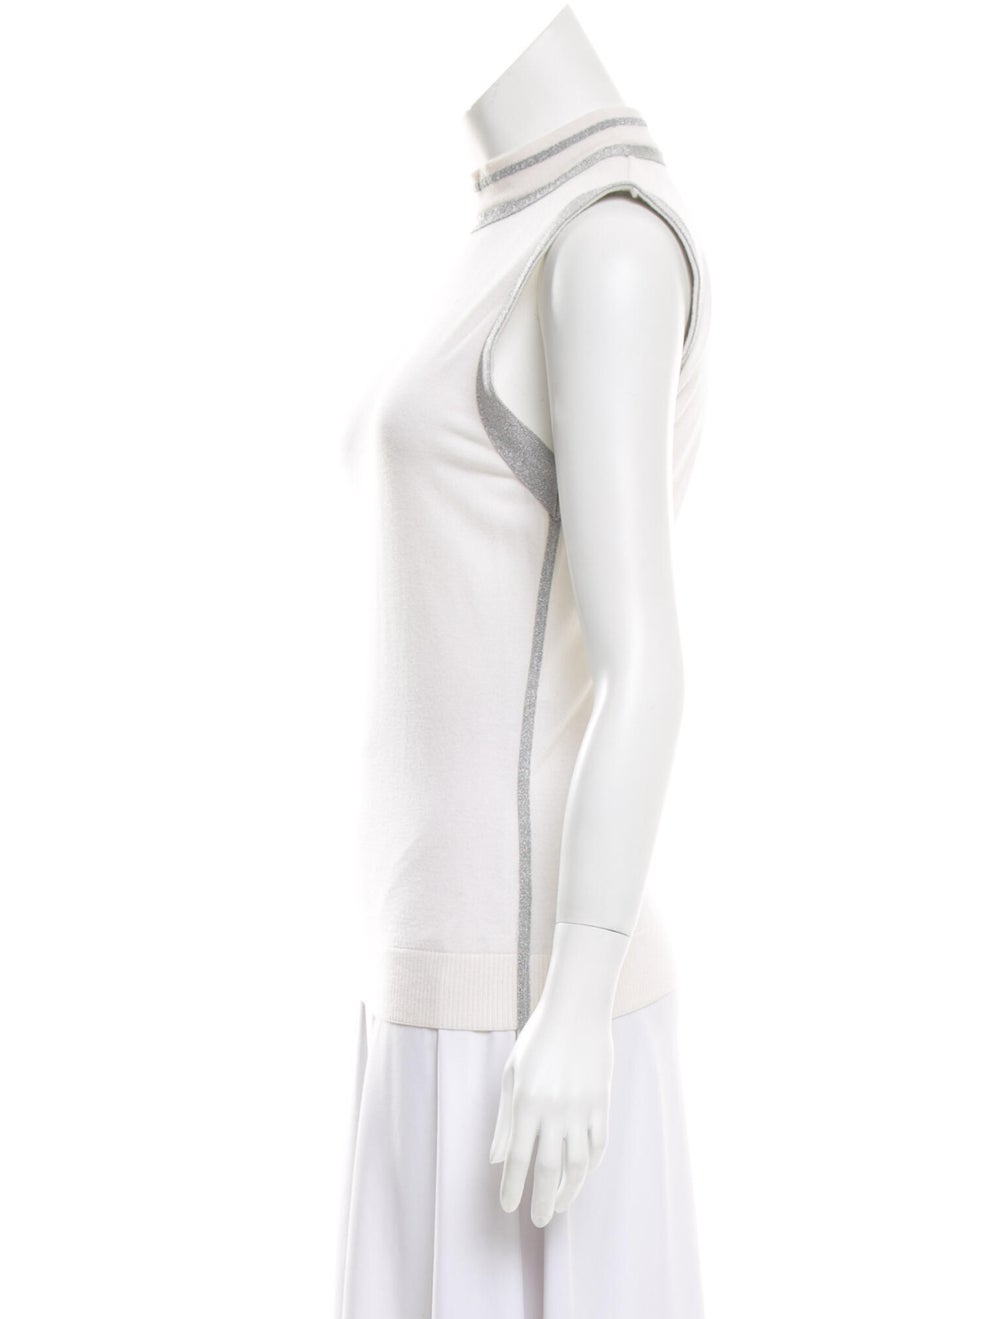 Paco Rabanne Turtleneck Sweater White - image 2